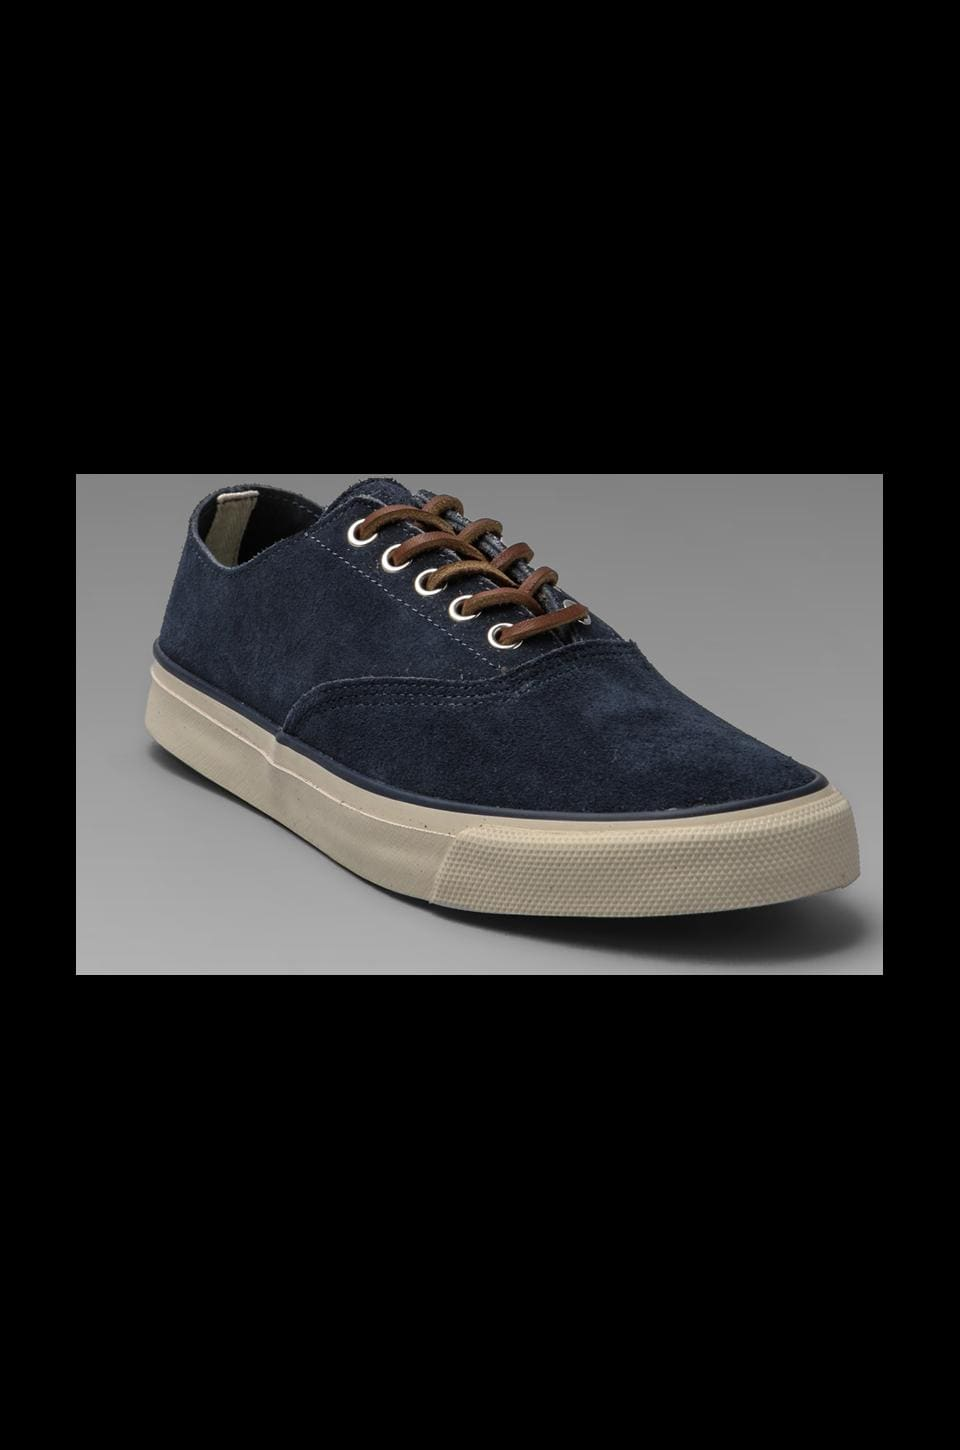 Sperry Top-Sider CVO Suede in Navy Suede